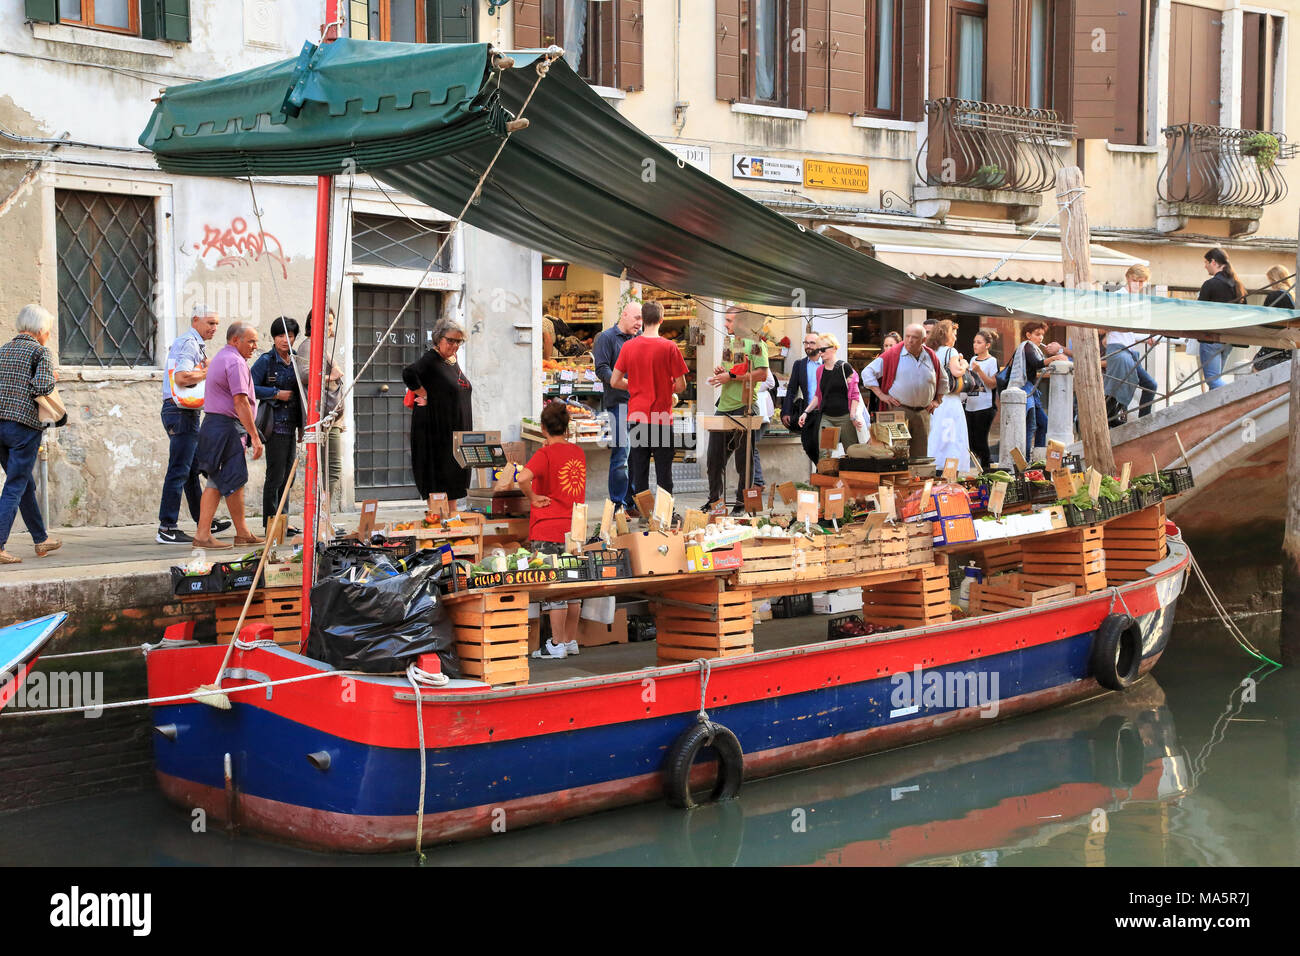 La Barca - Fruit and vegetable canal boat shop in Venice - Stock Image